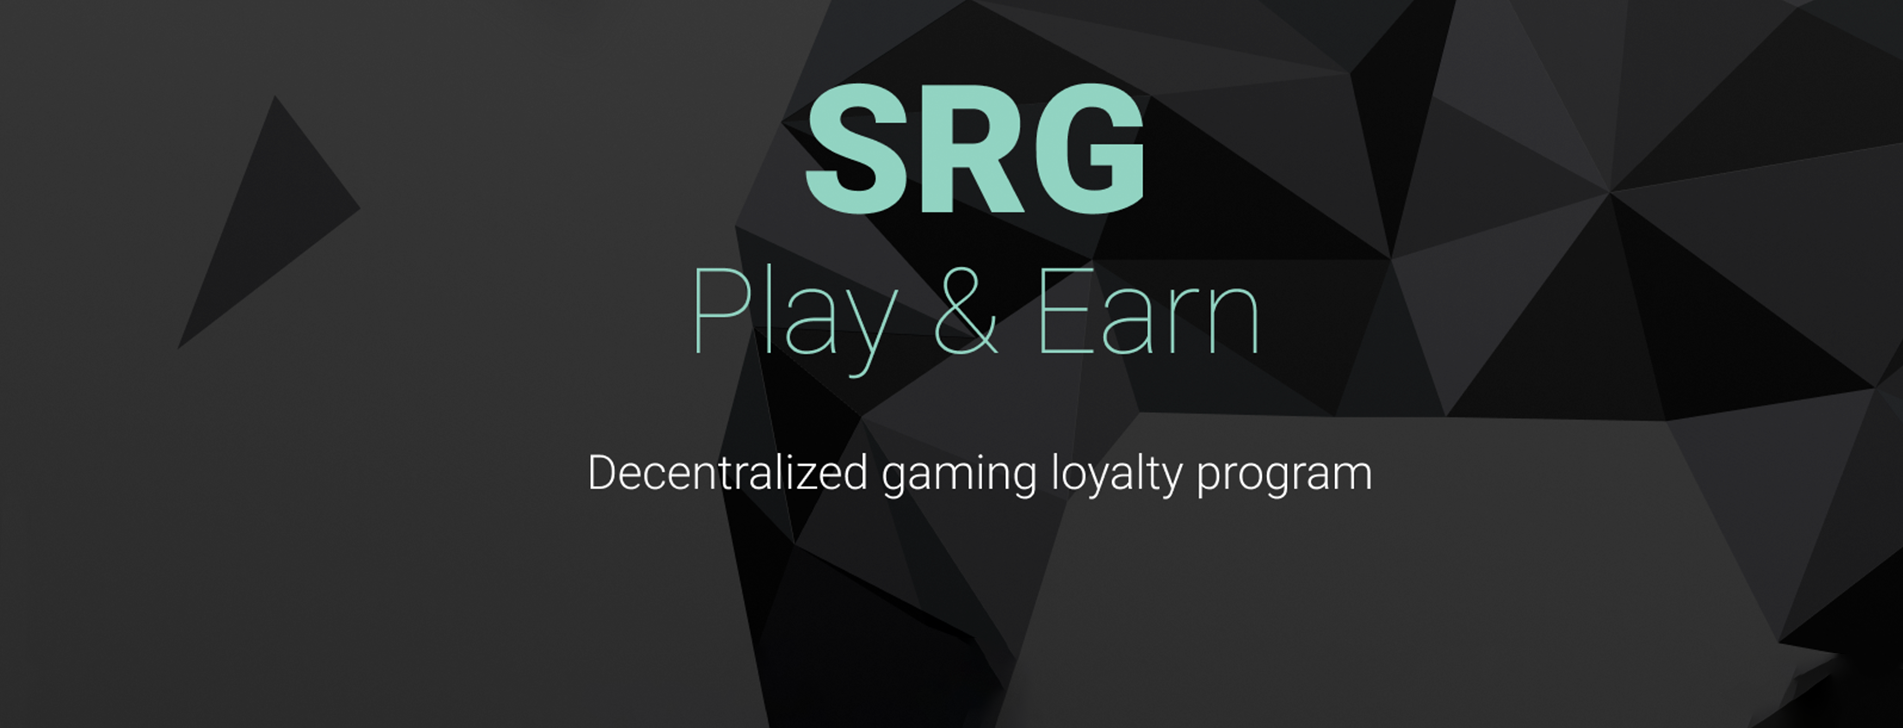 Translation of SRG community marketing materials